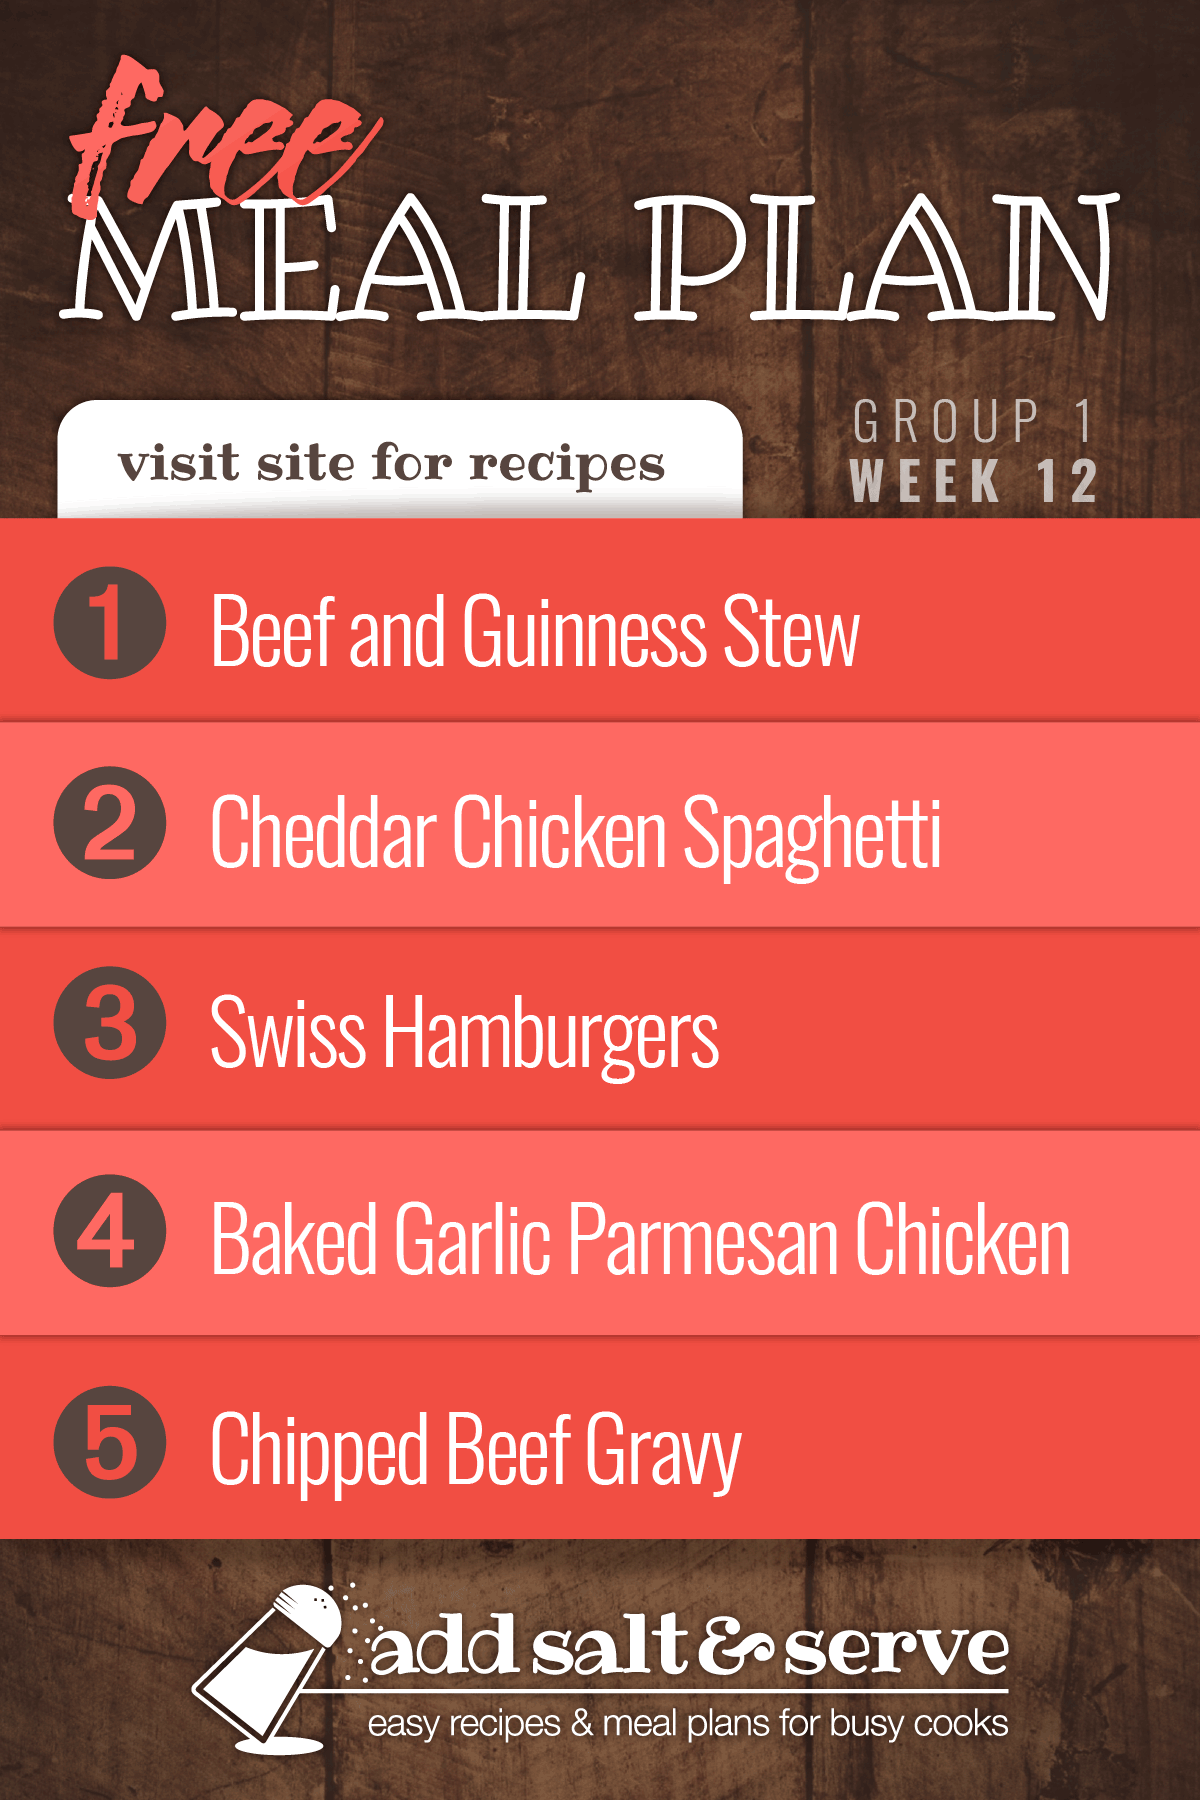 Free Meal Plan for Week 12 (Group 1): Beef and Guinness Stew over Mashed Potatoes, Cheddar Chicken Spaghetti, Swiss Hamburgers, Baked Garlic Parmesan Chicken, Chipped Beef Gravy and Buttermilk Biscuits - visit Add Salt & Serve for recipes